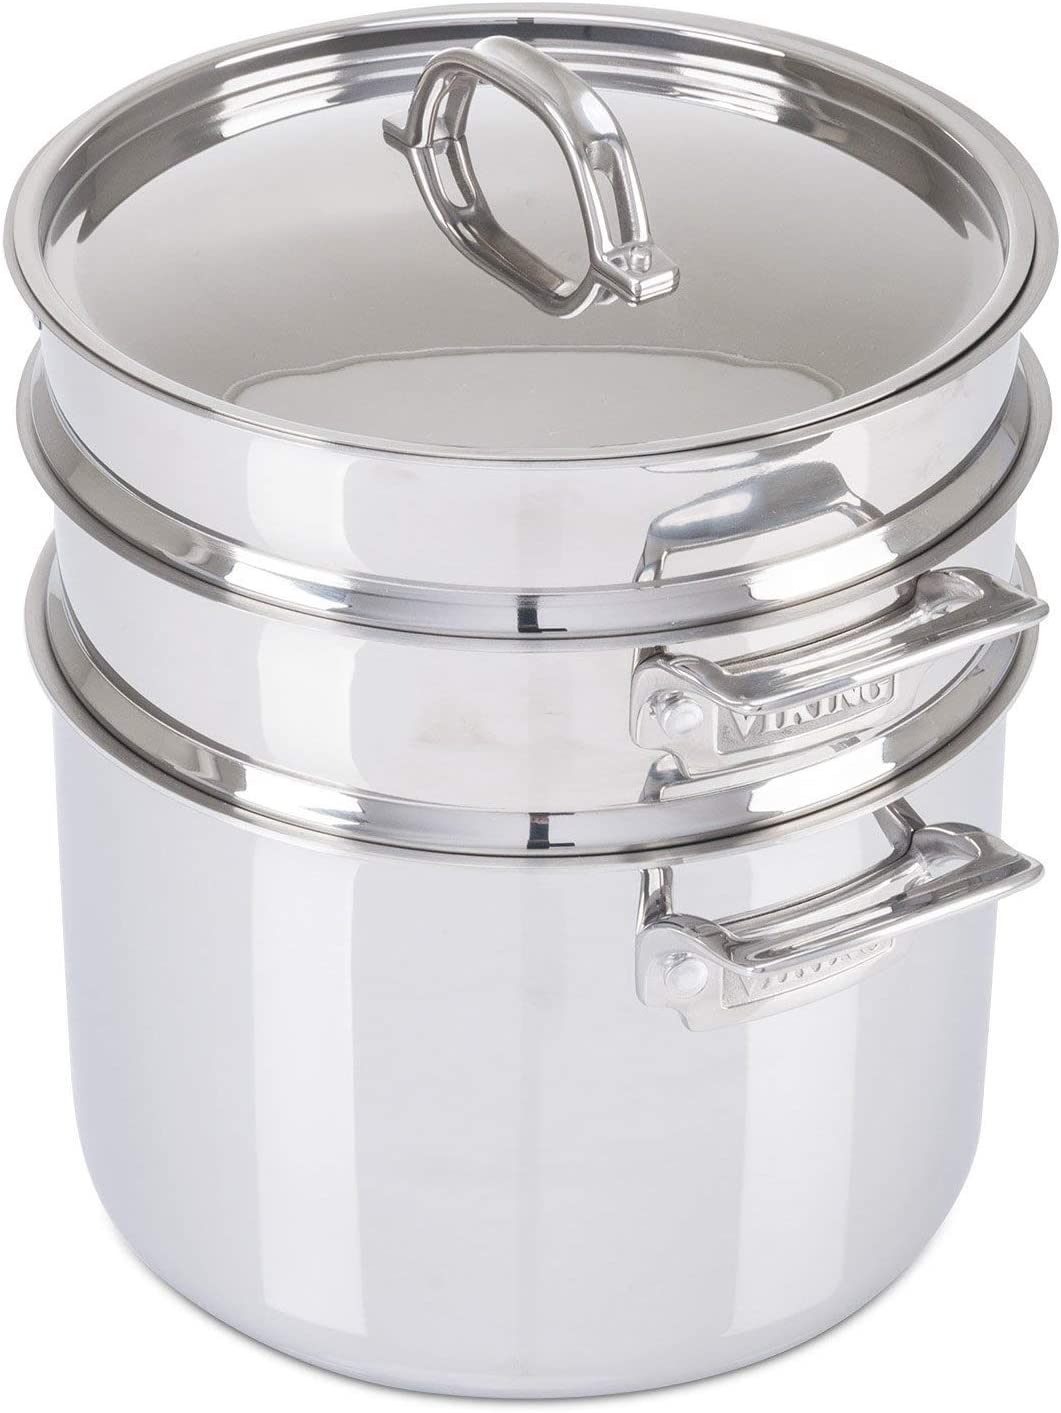 Viking 3-Ply Stainless Steel Pasta Pot with Steamer, 8 Quart (Renewed)